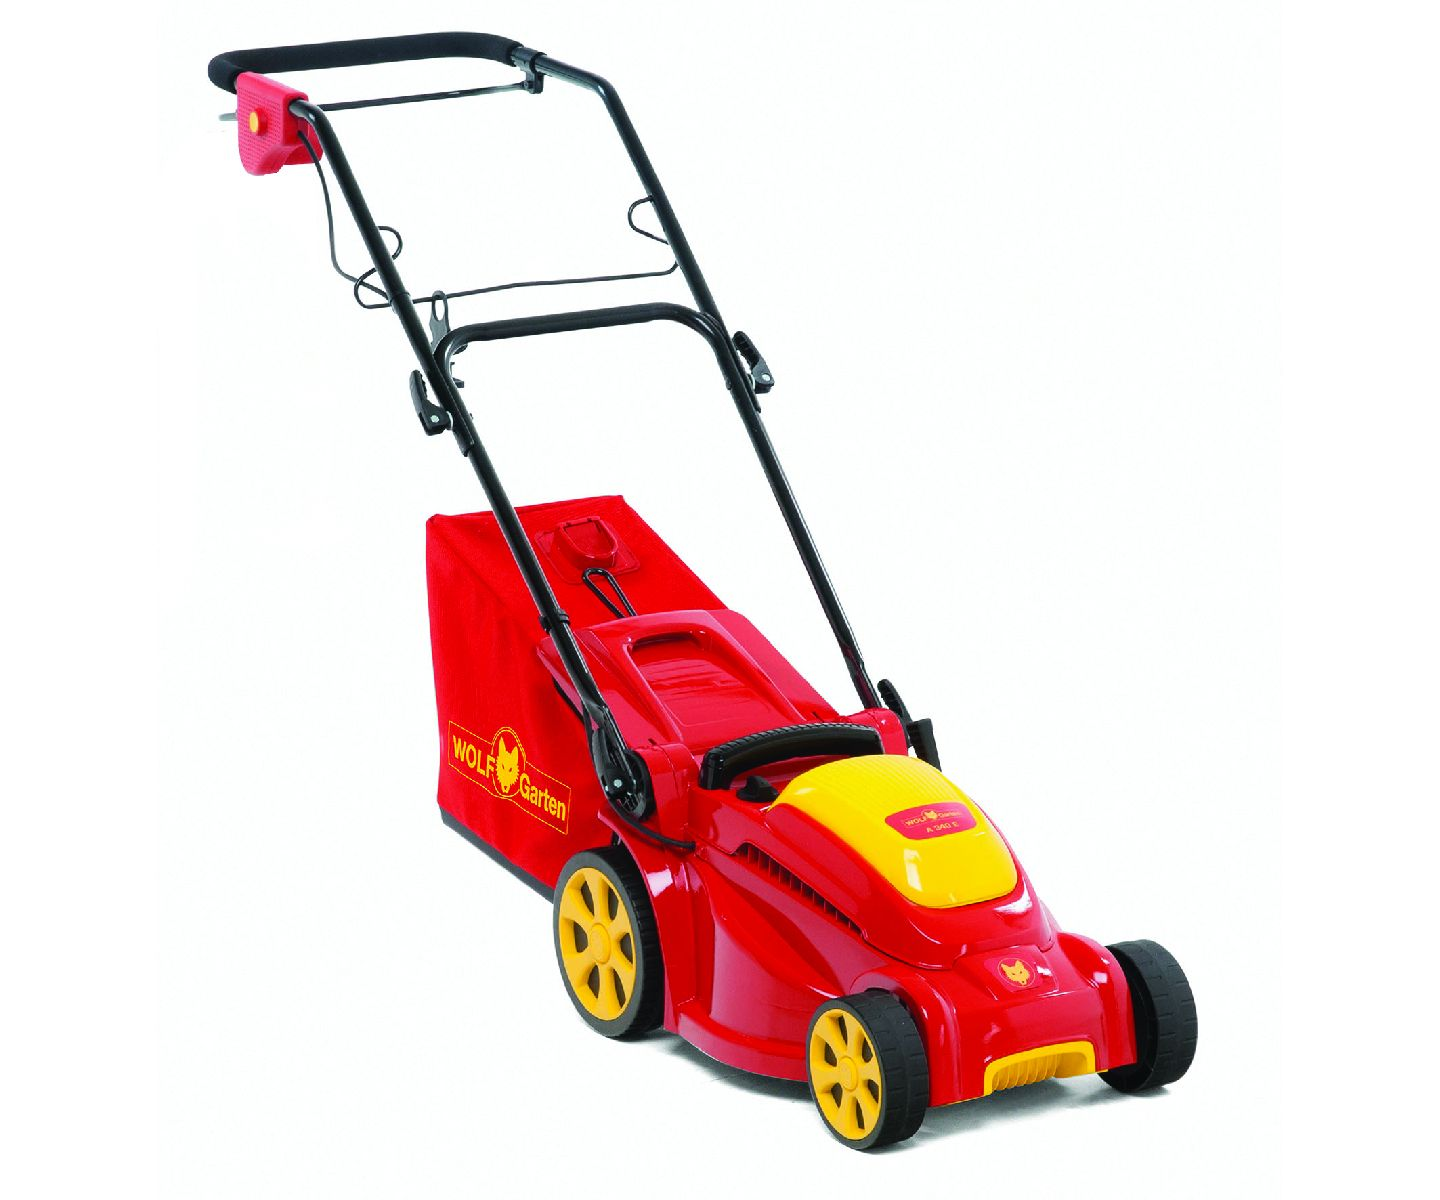 Wolf Garten A340E electric lawn mower (34cm cut)